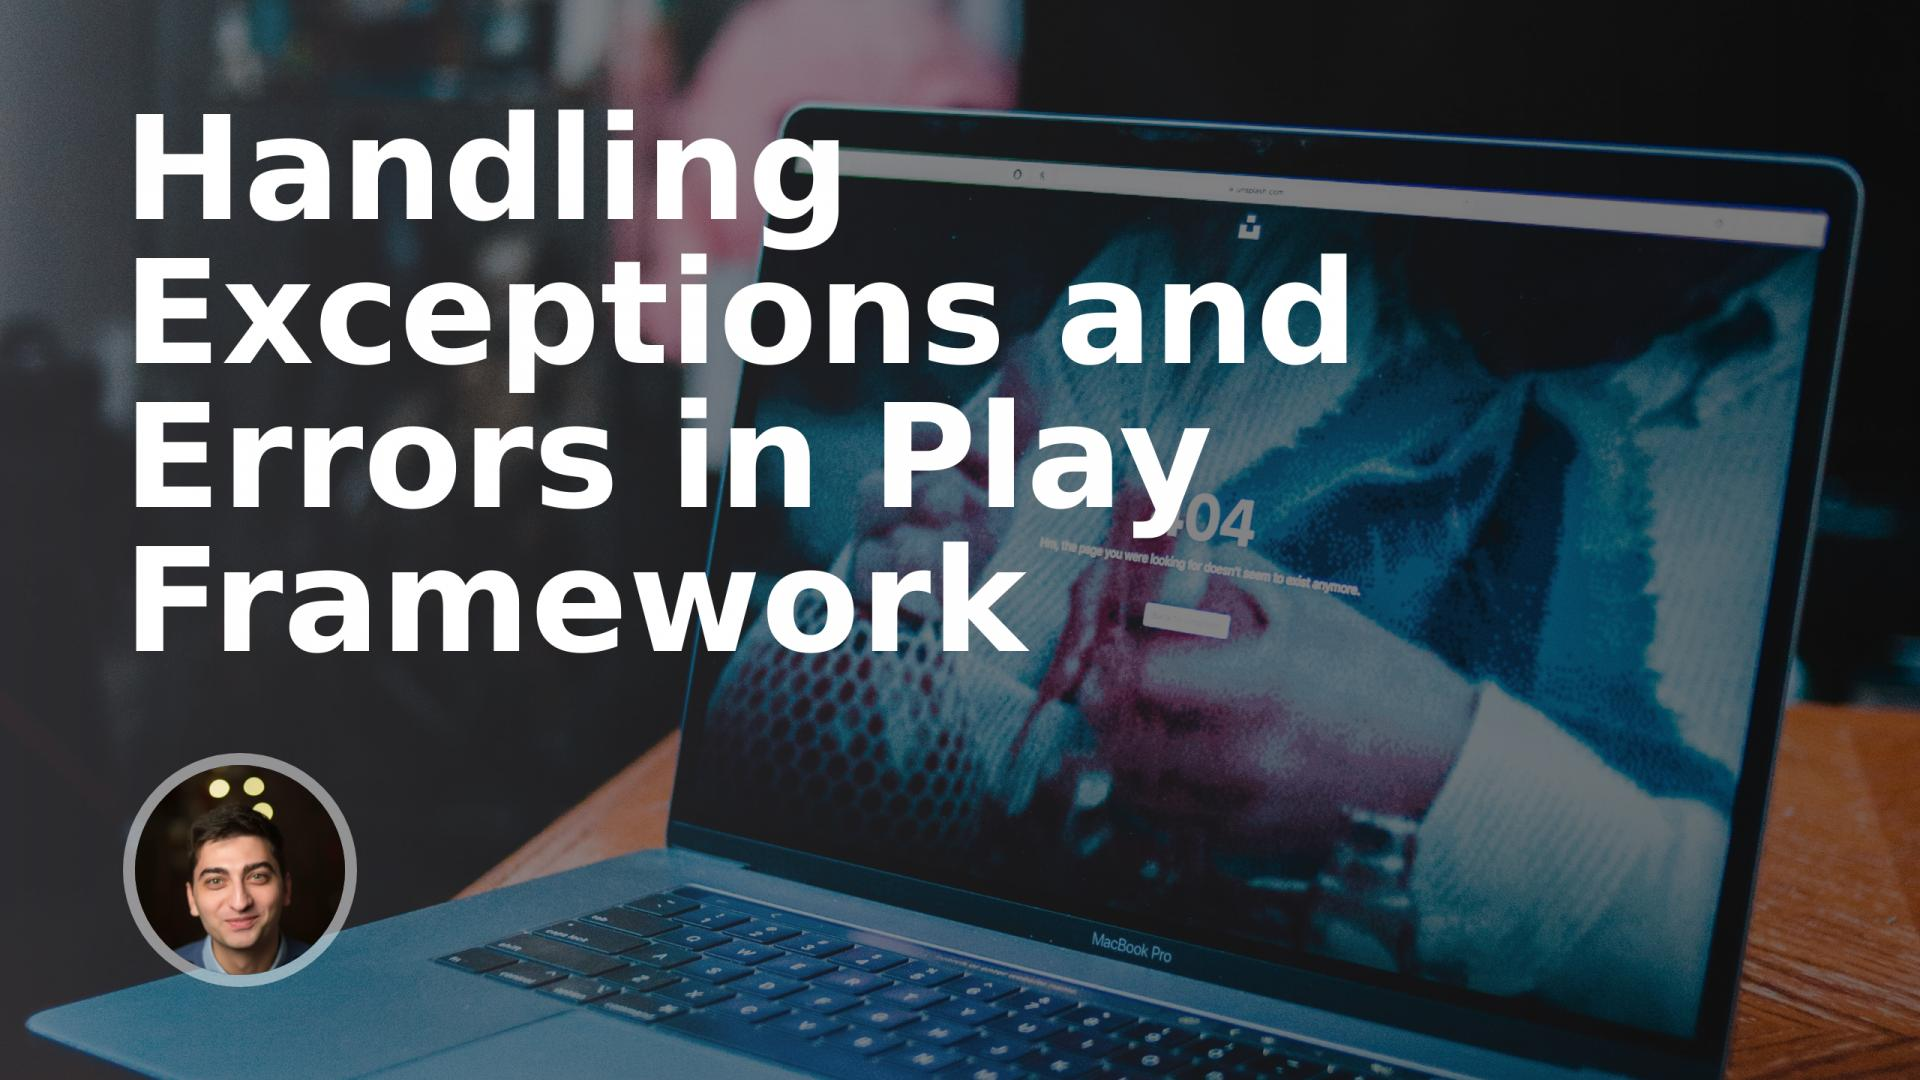 Handling Exceptions and Errors in Play Framework